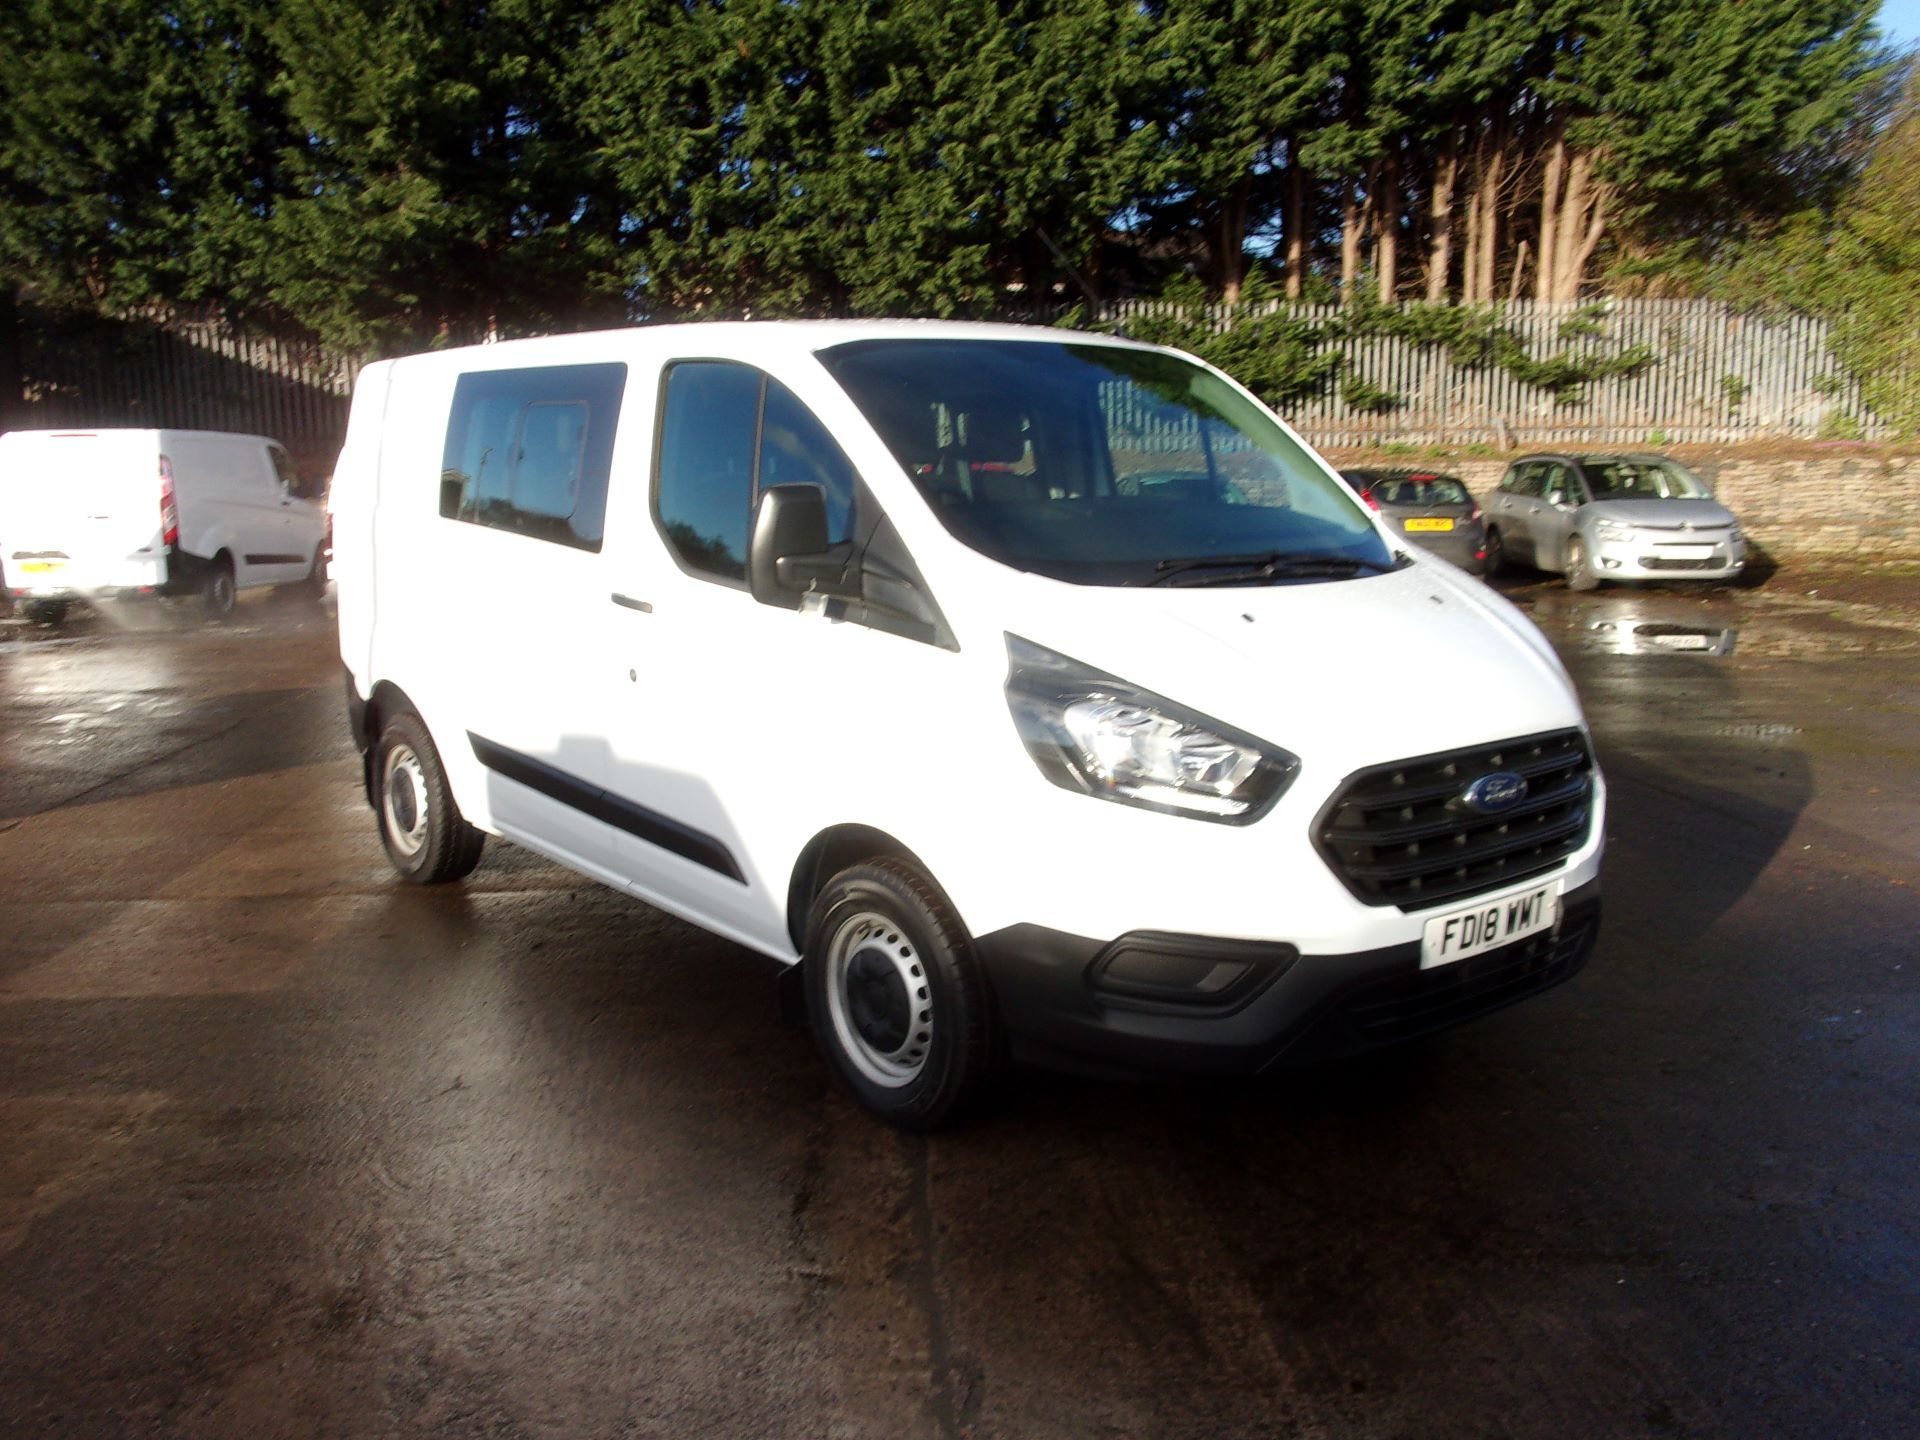 2018 Ford Transit Custom 300 L1 DIESEL FWD 2.0 TDCI 105PS LOW ROOF DOUBLE CAB VAN EURO 6 (FD18WMT) Image 1